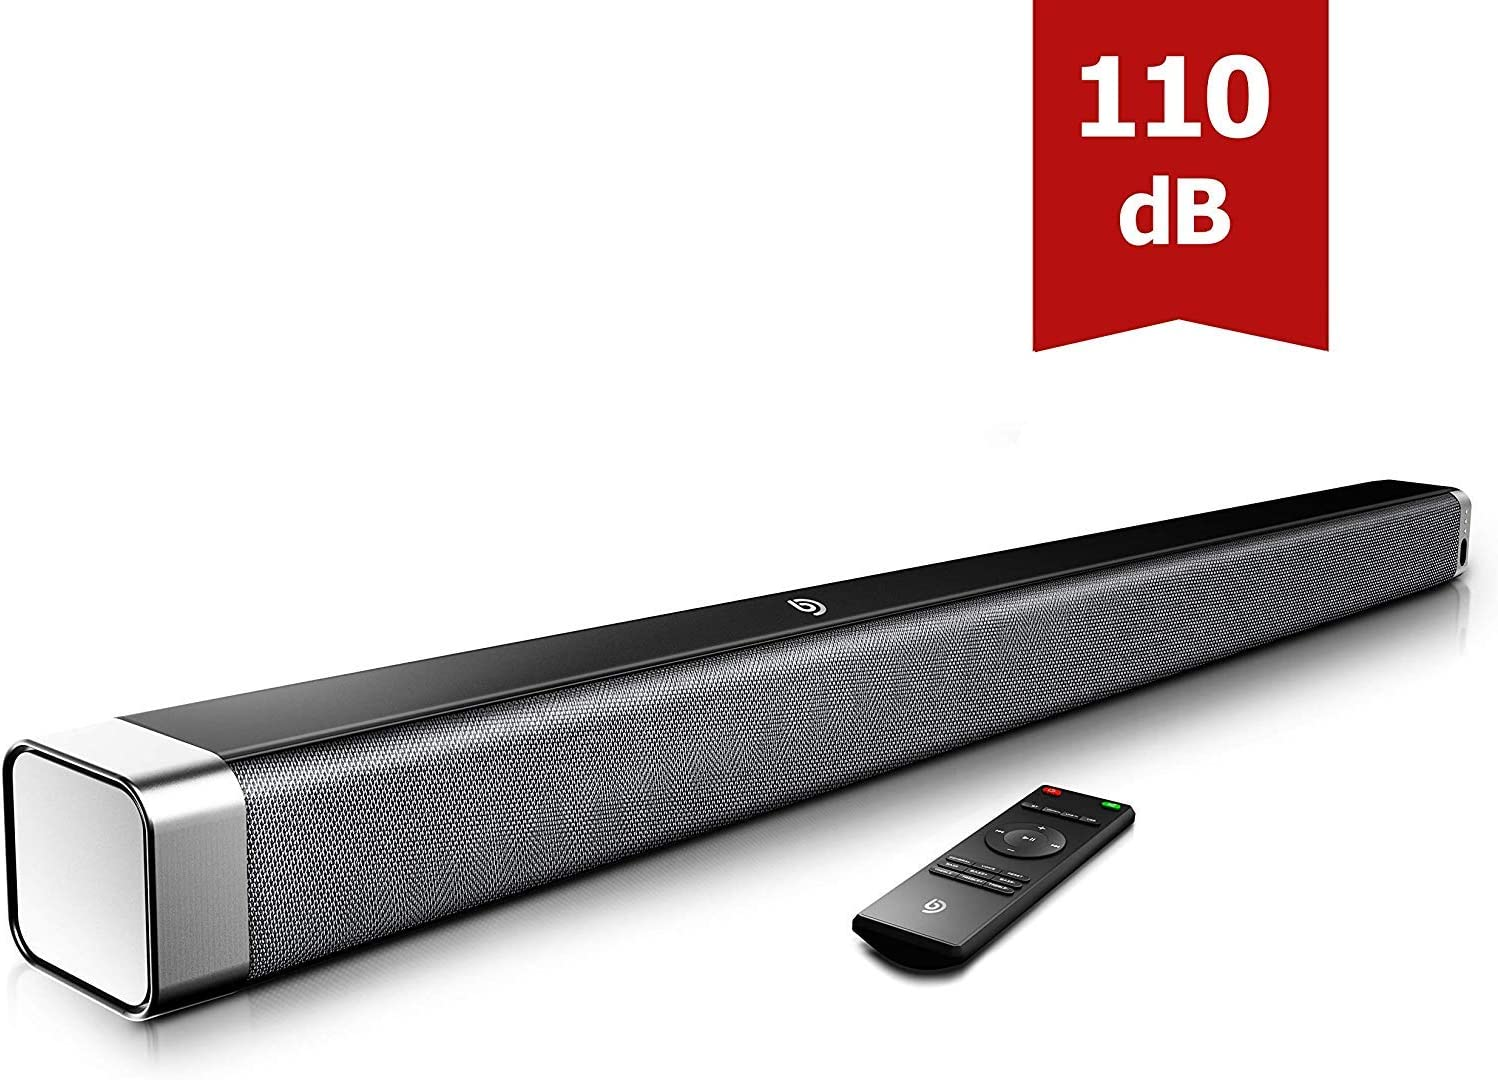 Bomaker Sound Bar, 37 Inch 2.0 Channel TV Sound Bar with Built-in Subwoofer & Bluetooth, 110dB, 3D Surround Sound, 4 EQ Modes, Remote Control, Optical, RCA Cable Included